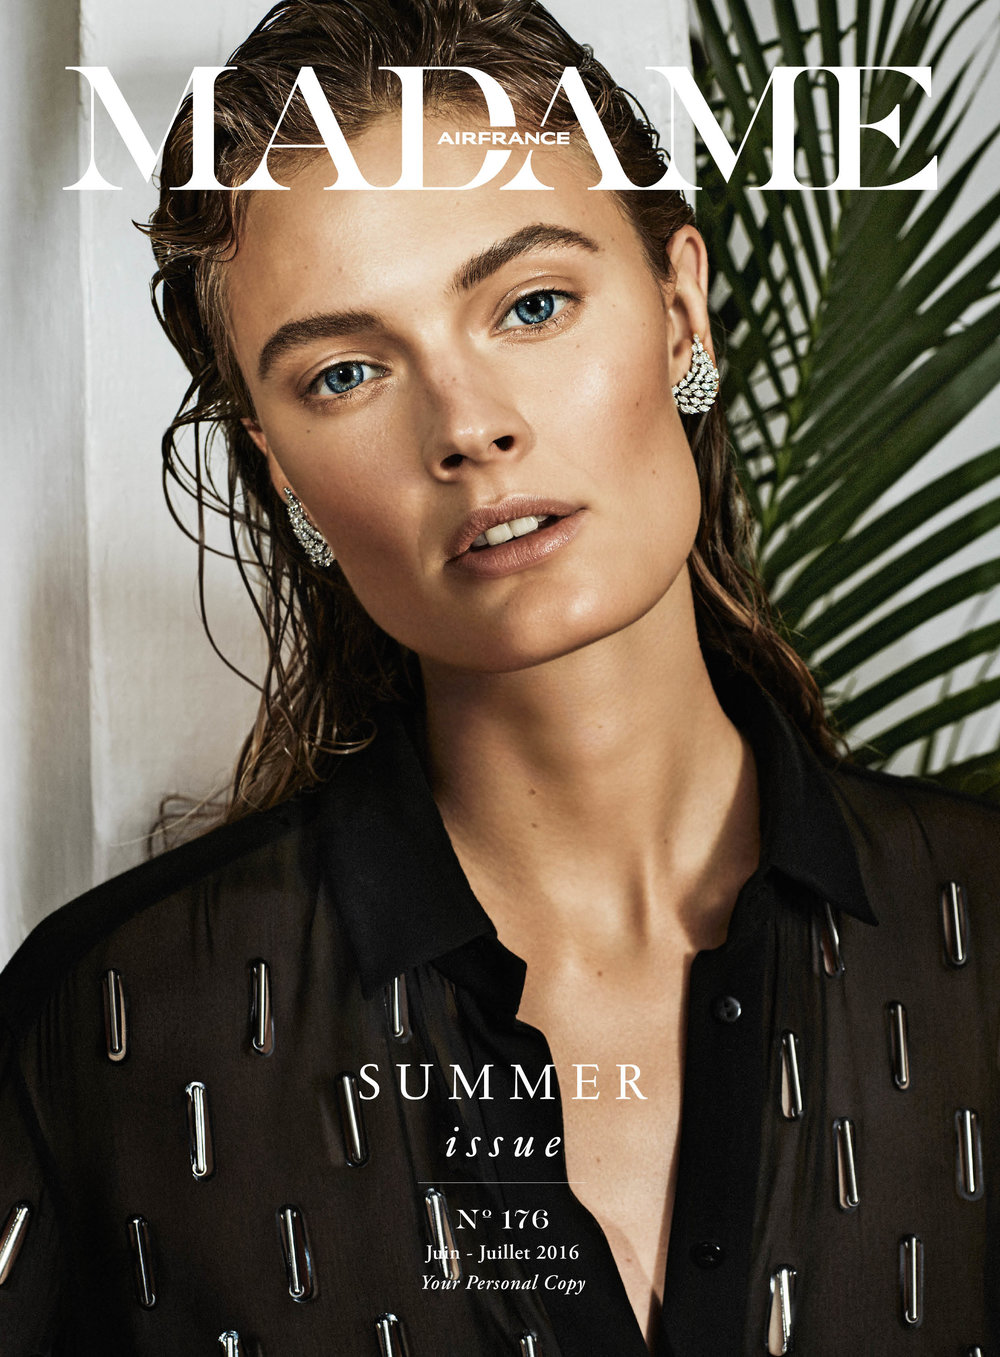 Air France Madame - N°176 Juin-Juillet 2016  Photographer - Alique  Model - Constance Jablonski